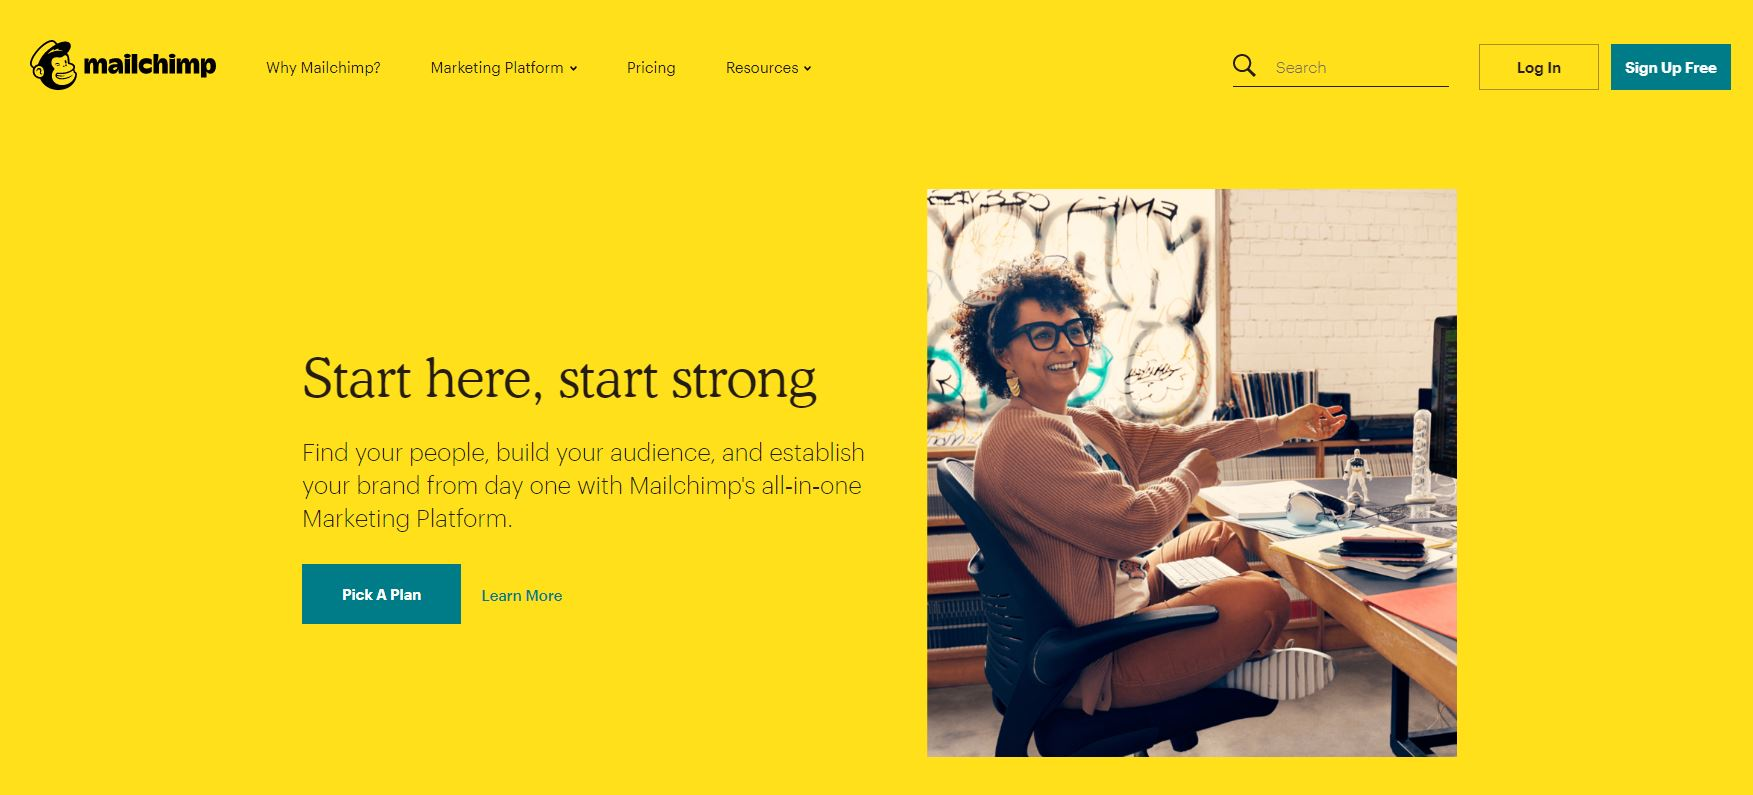 Mailchimp welcome screen